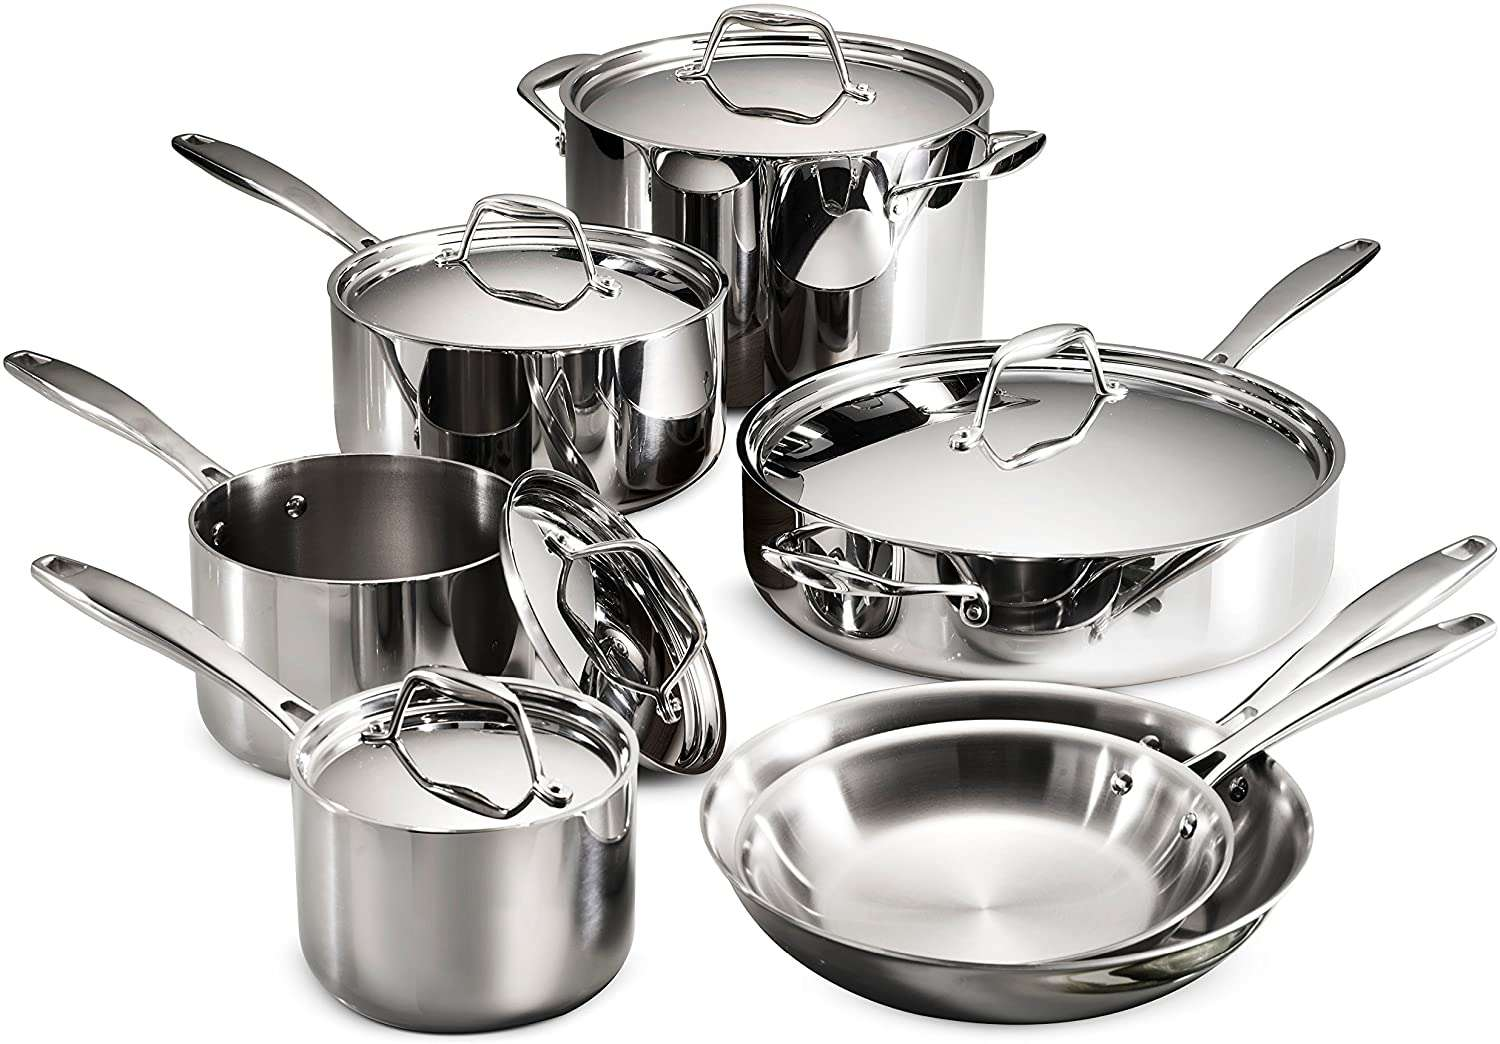 tramontina-stainless-steel-tri-ply-12-piece-cookware-set